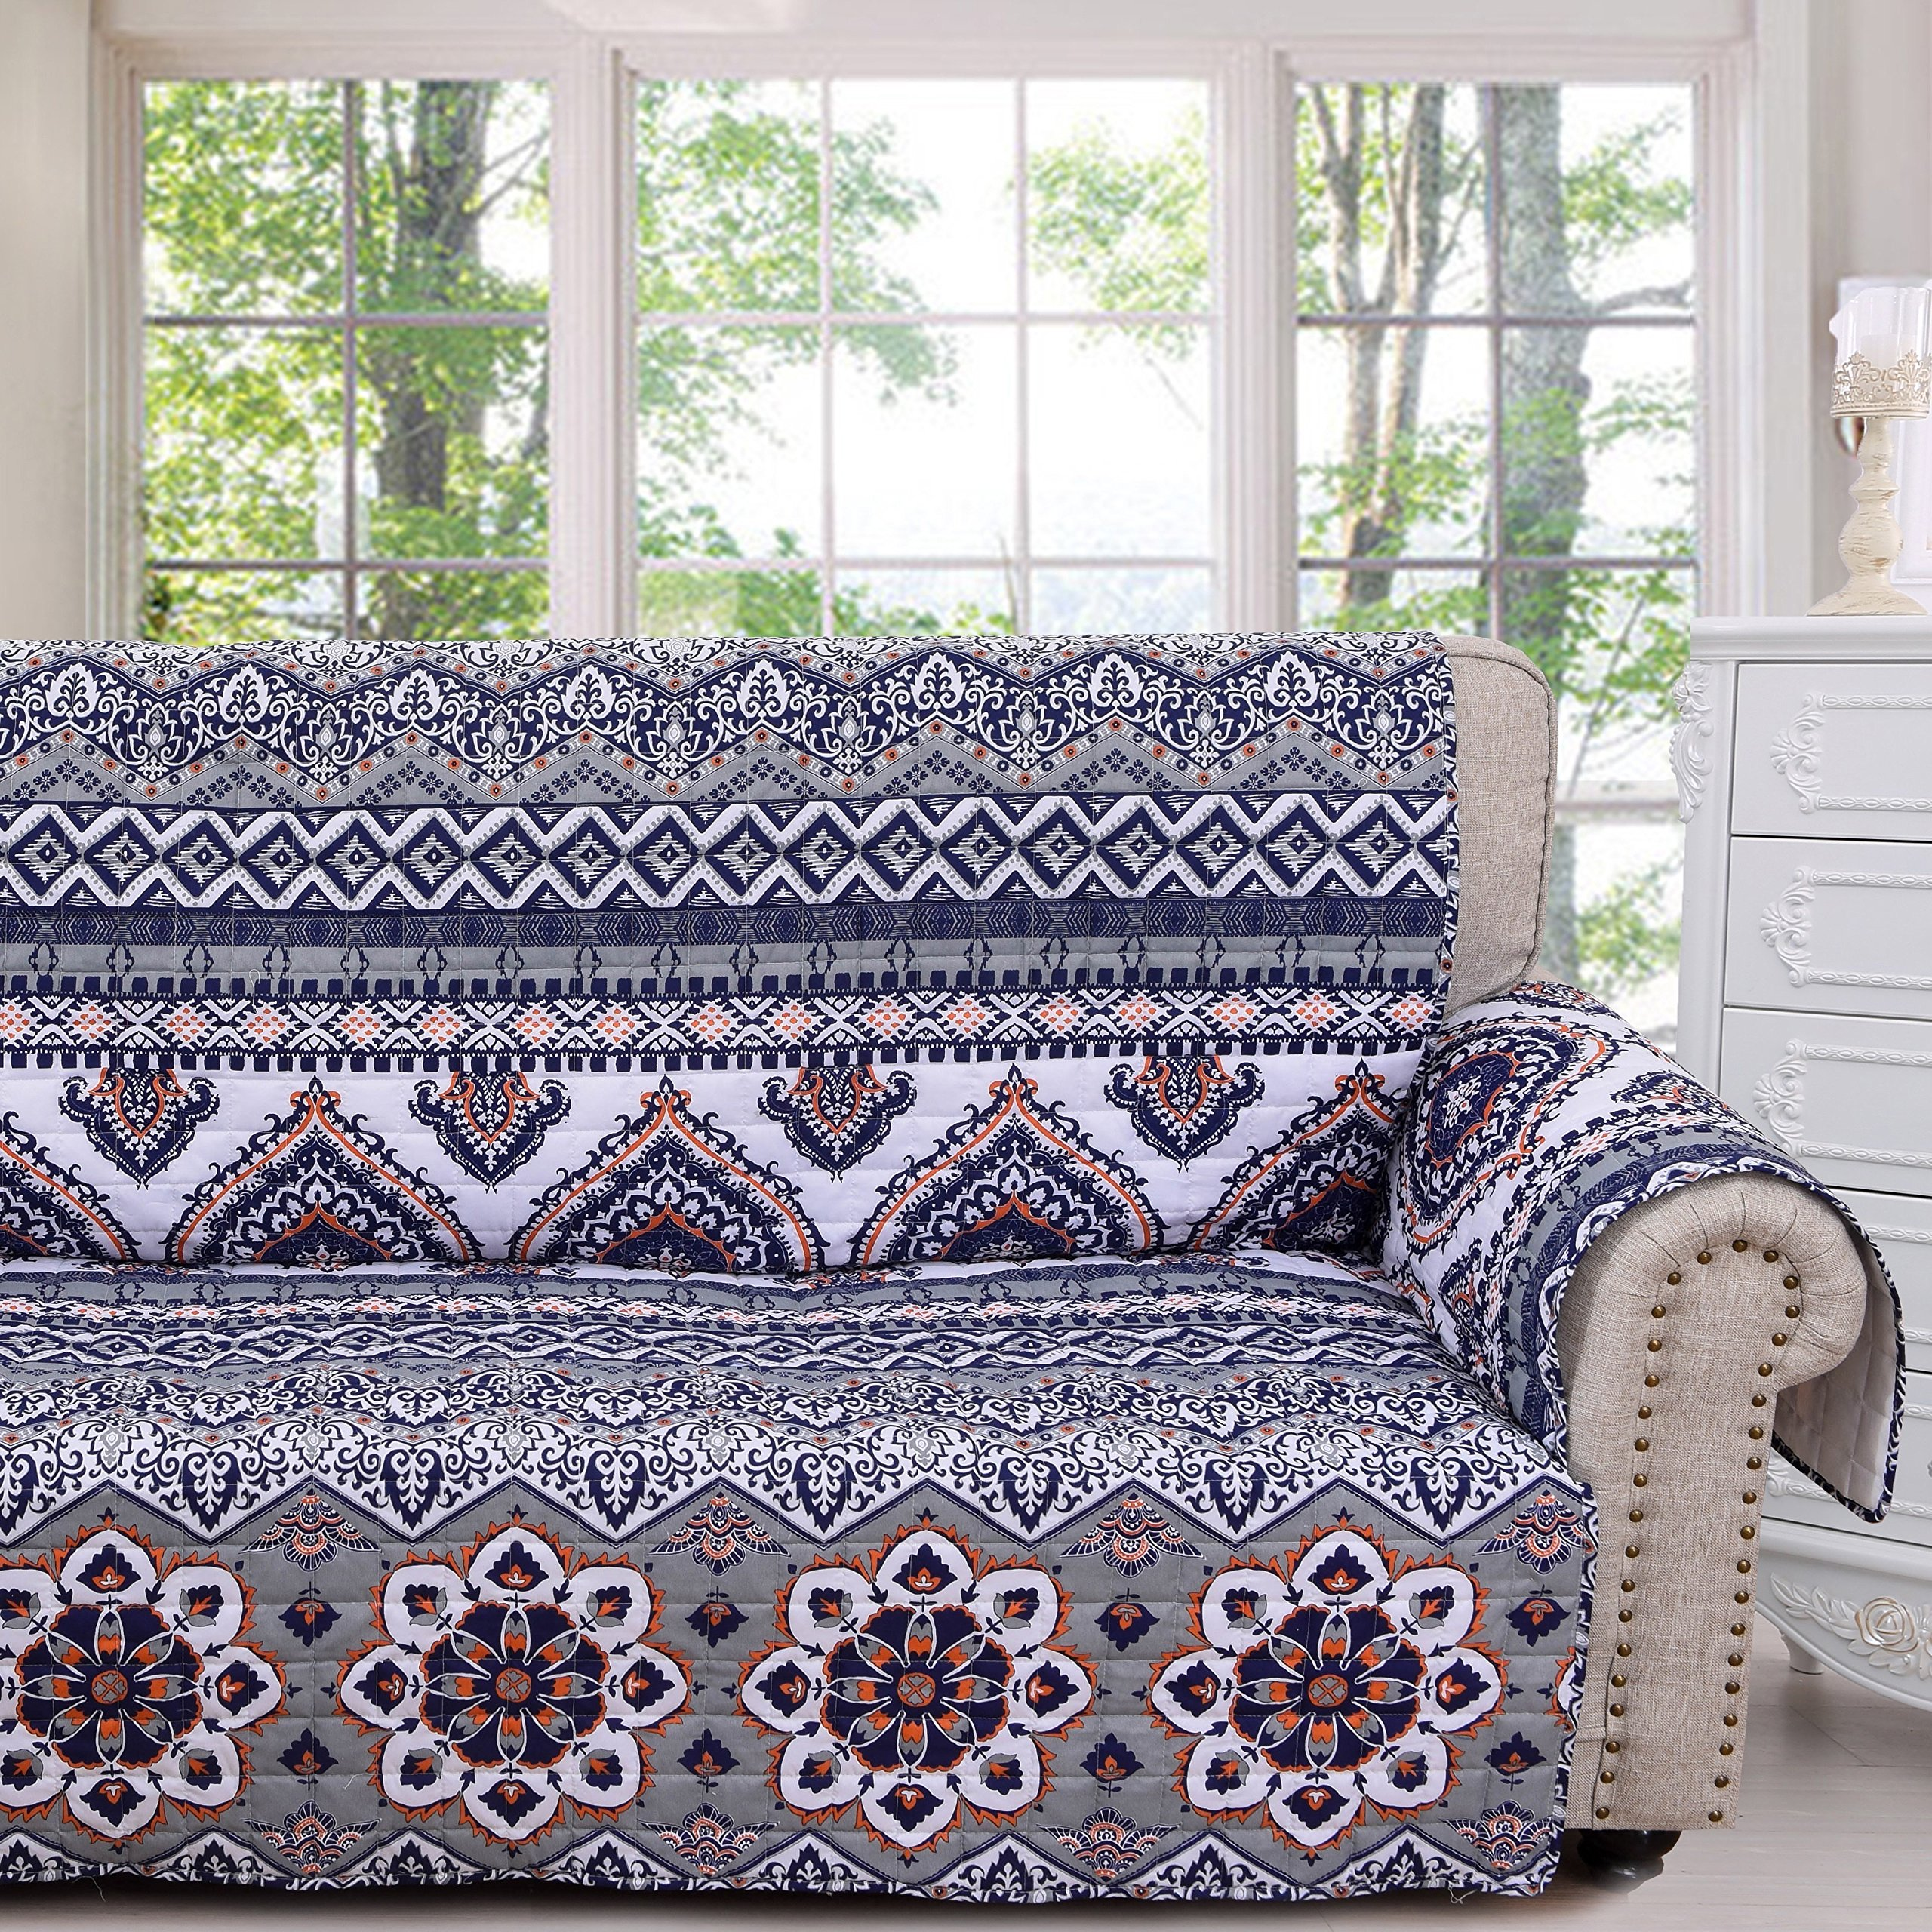 MN 1 Piece Blue White Paisley Theme Sofa Protector, Gray Geometric Flower Pattern Couch Protection Flowers Floral Leaves Furniture Protection Cover Pets Animals Covers Nature, Polyester